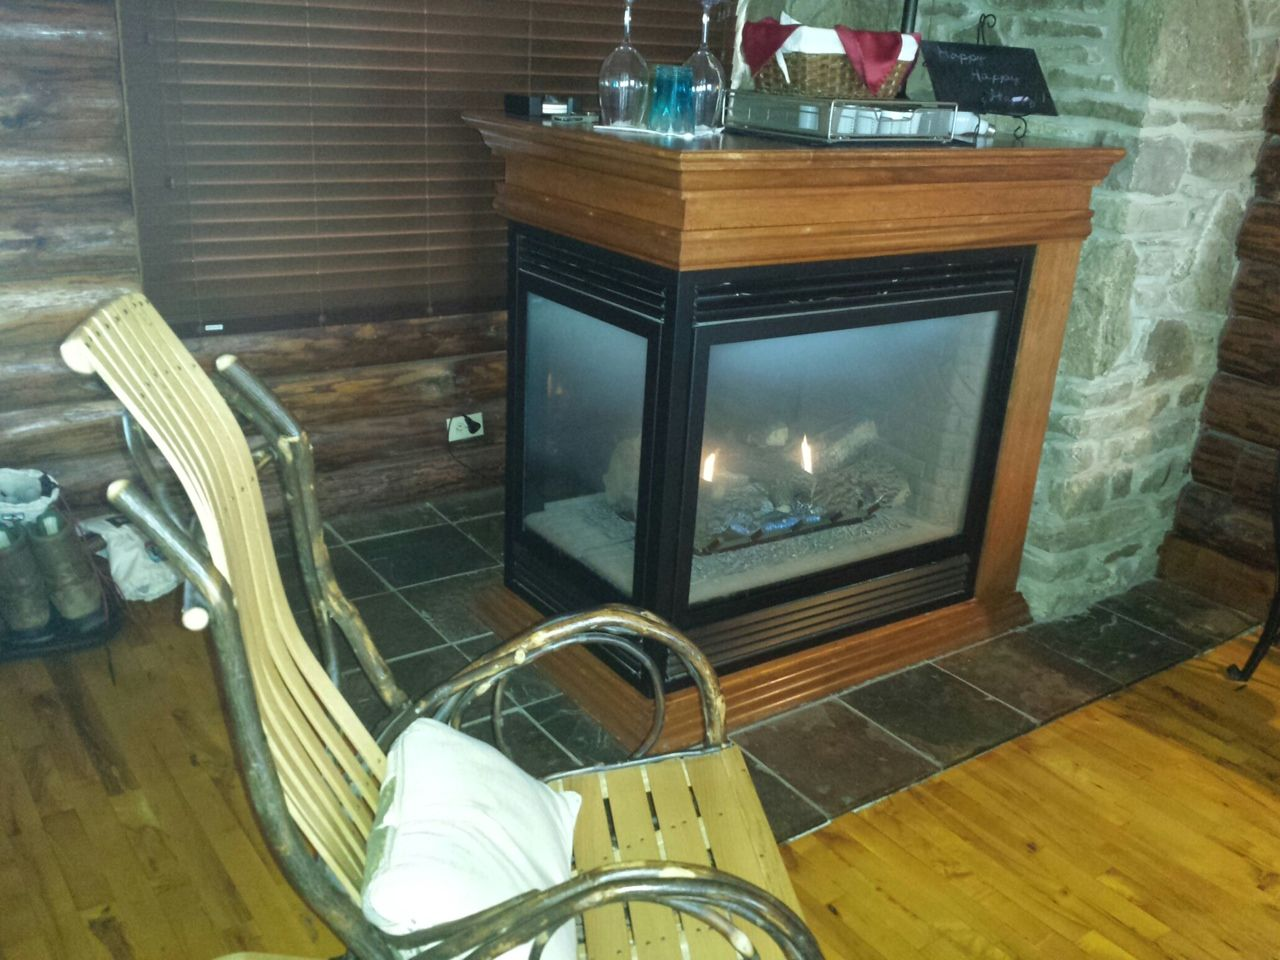 Bear Meadow Lodge Wellsboro Pa Looking Forward To Another Weekend Next Winter Wellsboro Lodge Home Appliances